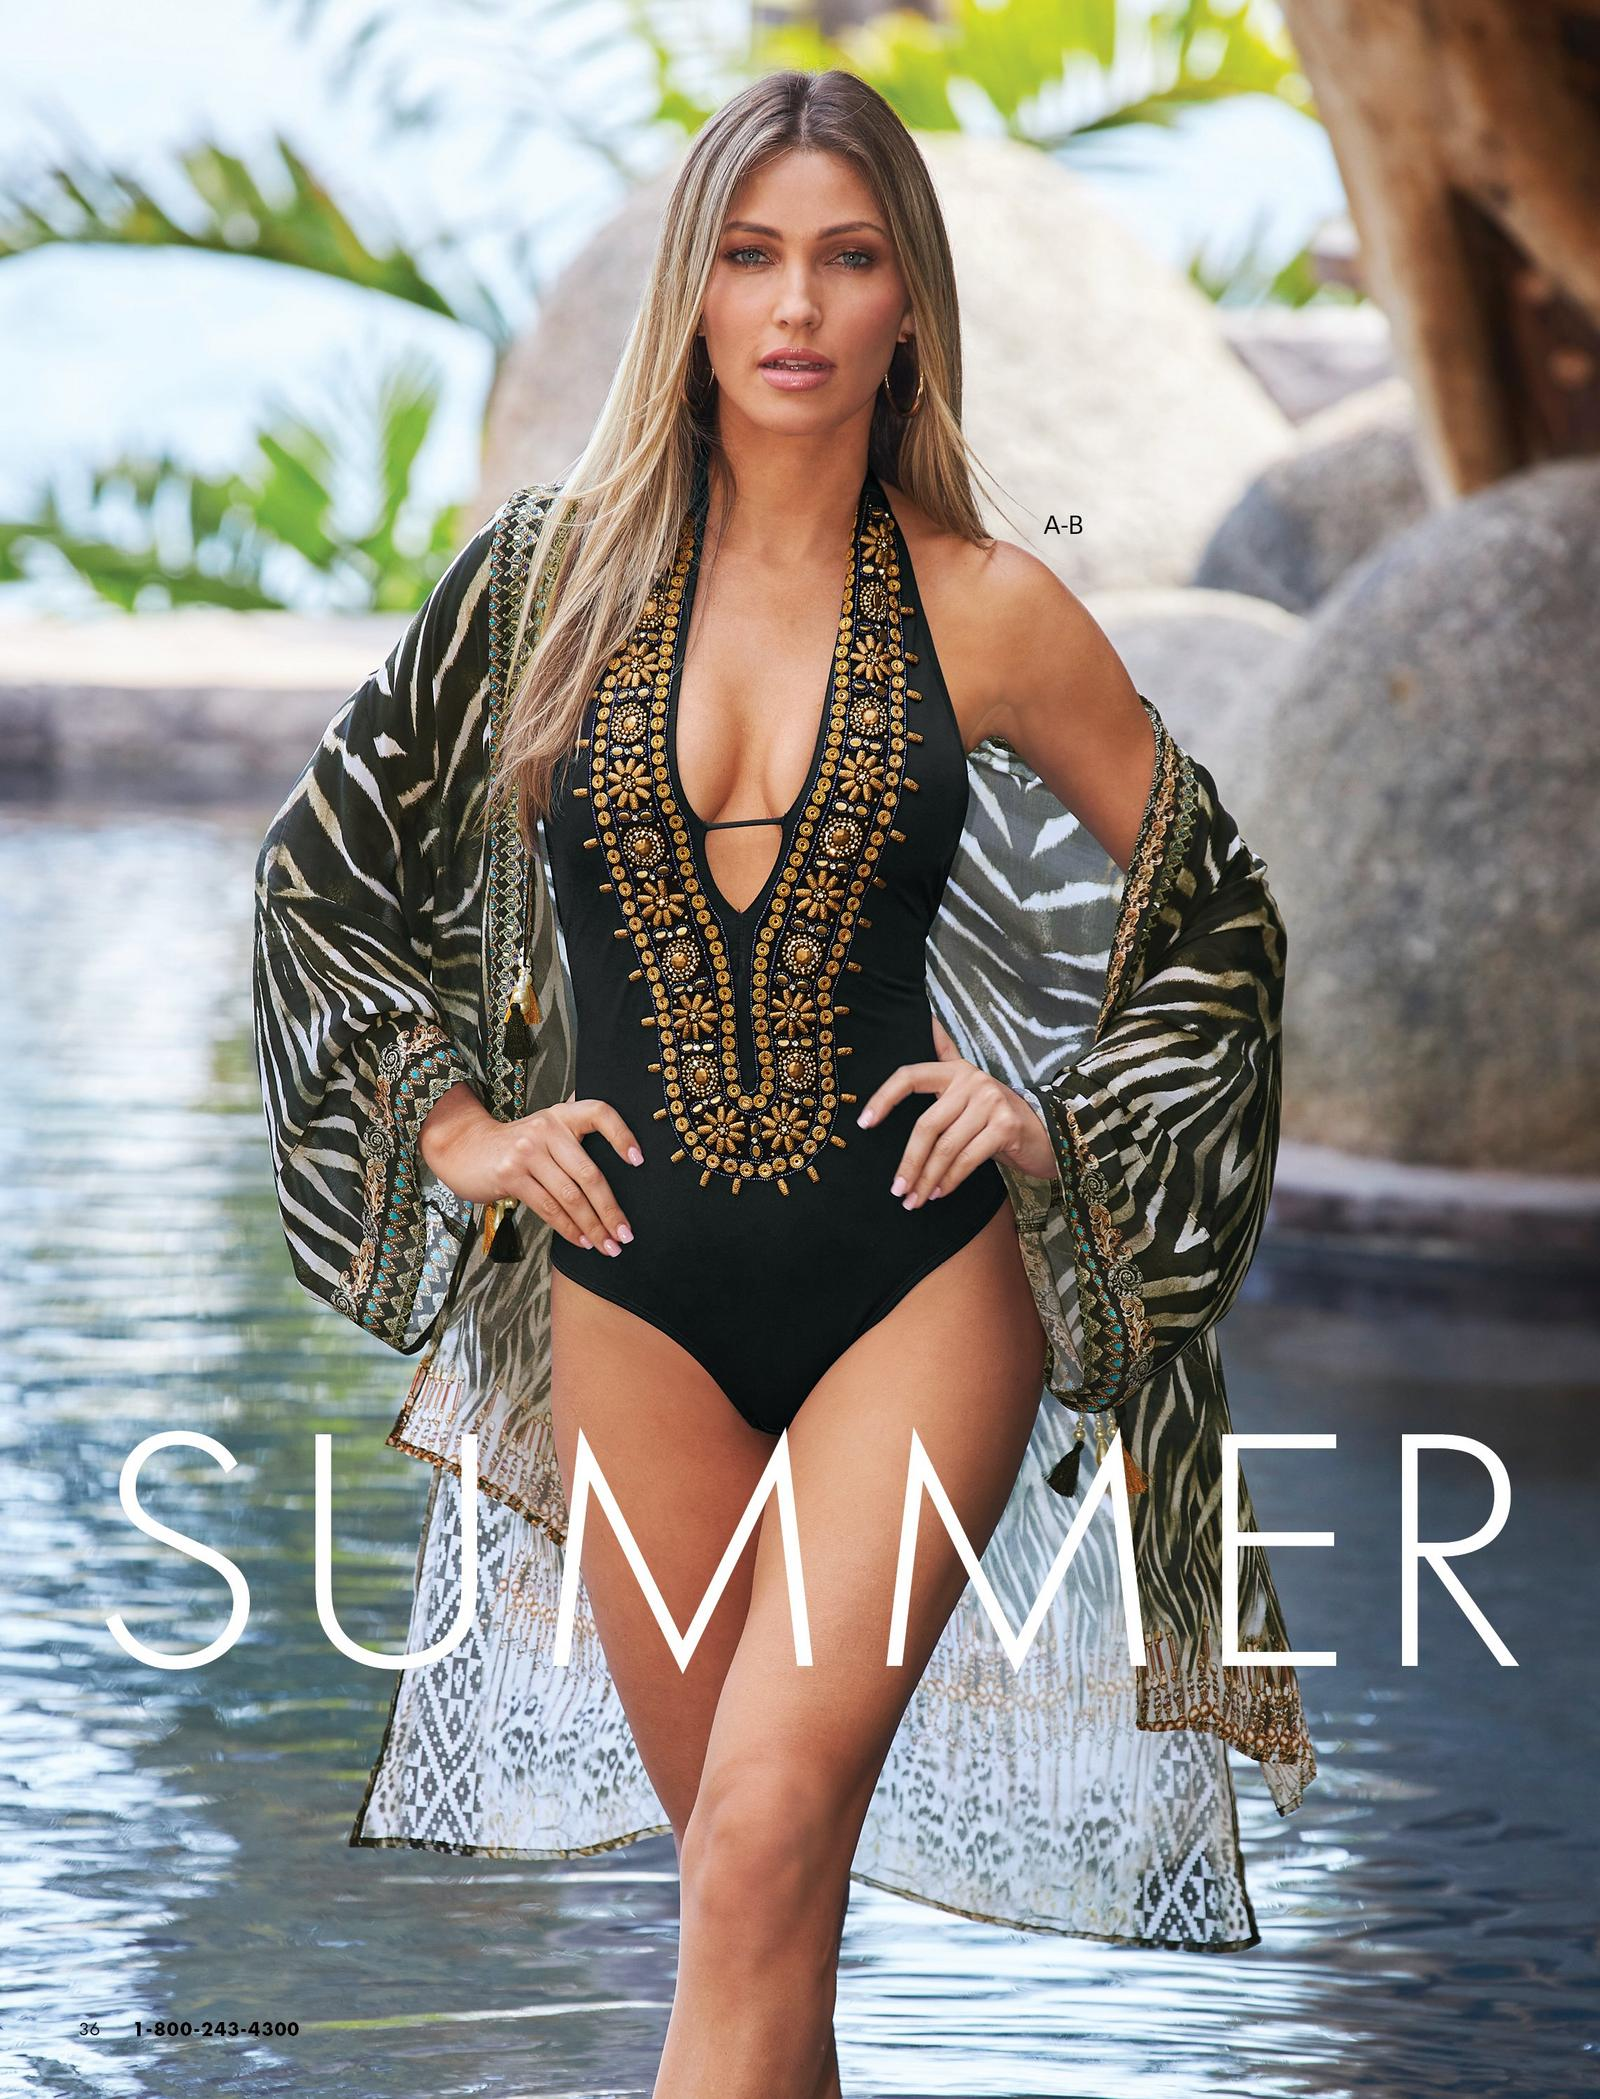 model wearing a black and gold embellished deep v-neck one-piece swimsuit and a gold and black animal print duster.